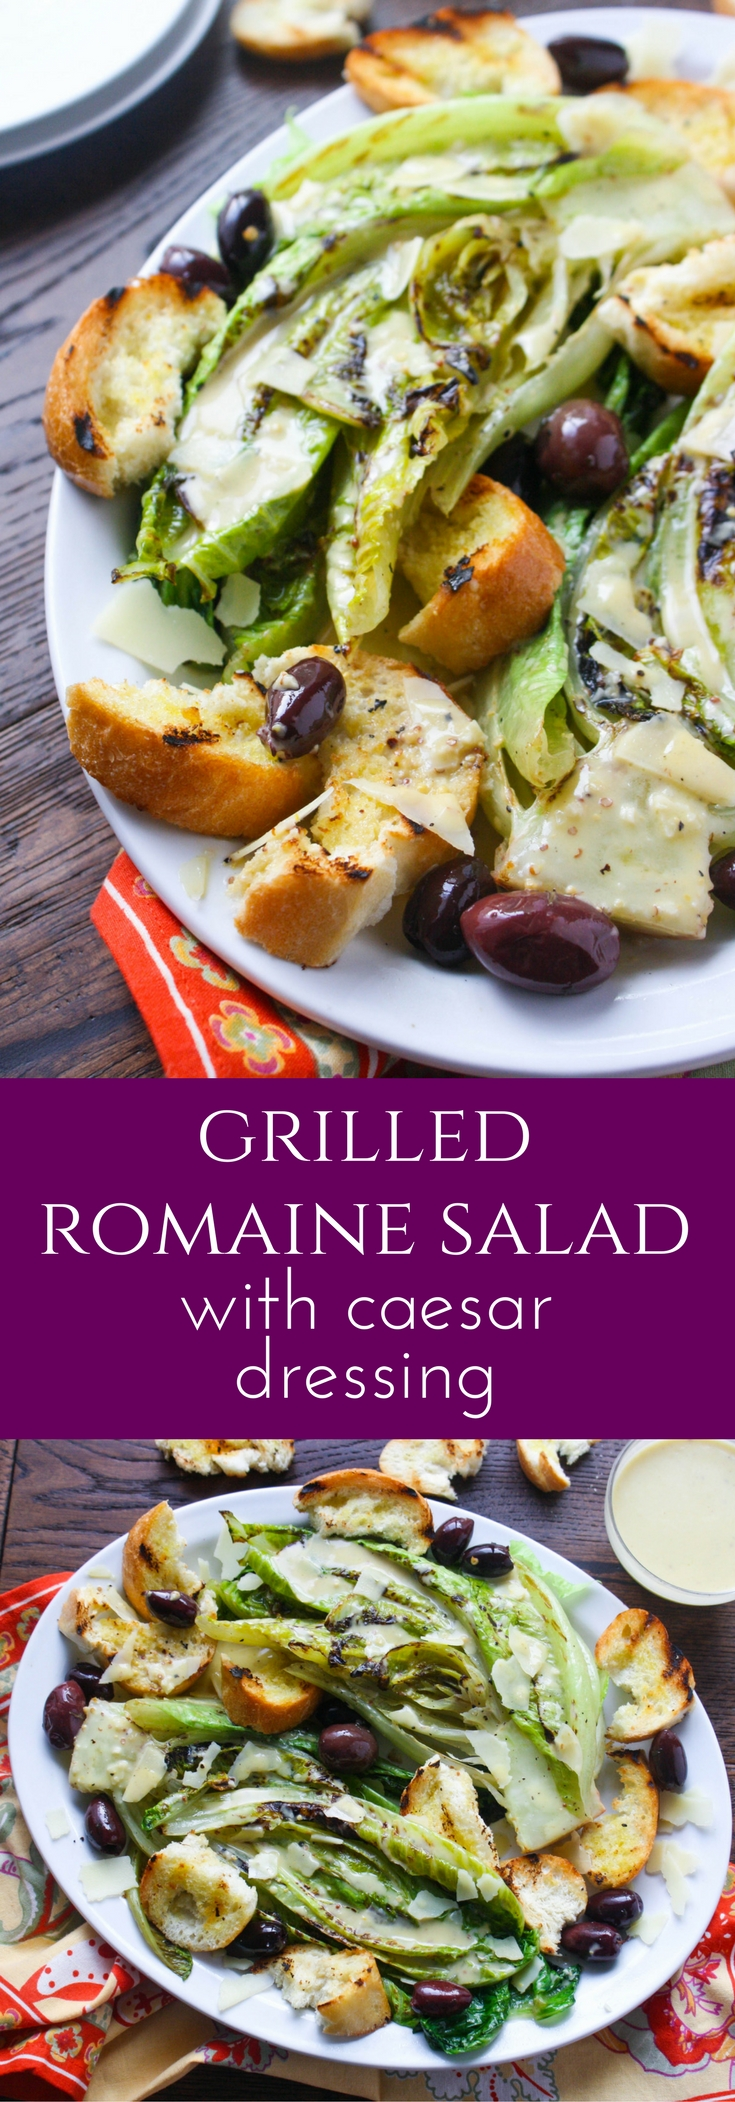 Grilled Romaine Salad with Caesar Dressing is a fabulous salad to serve any time of year. Grilling adds a great flavor along with the (eggless) dressing!